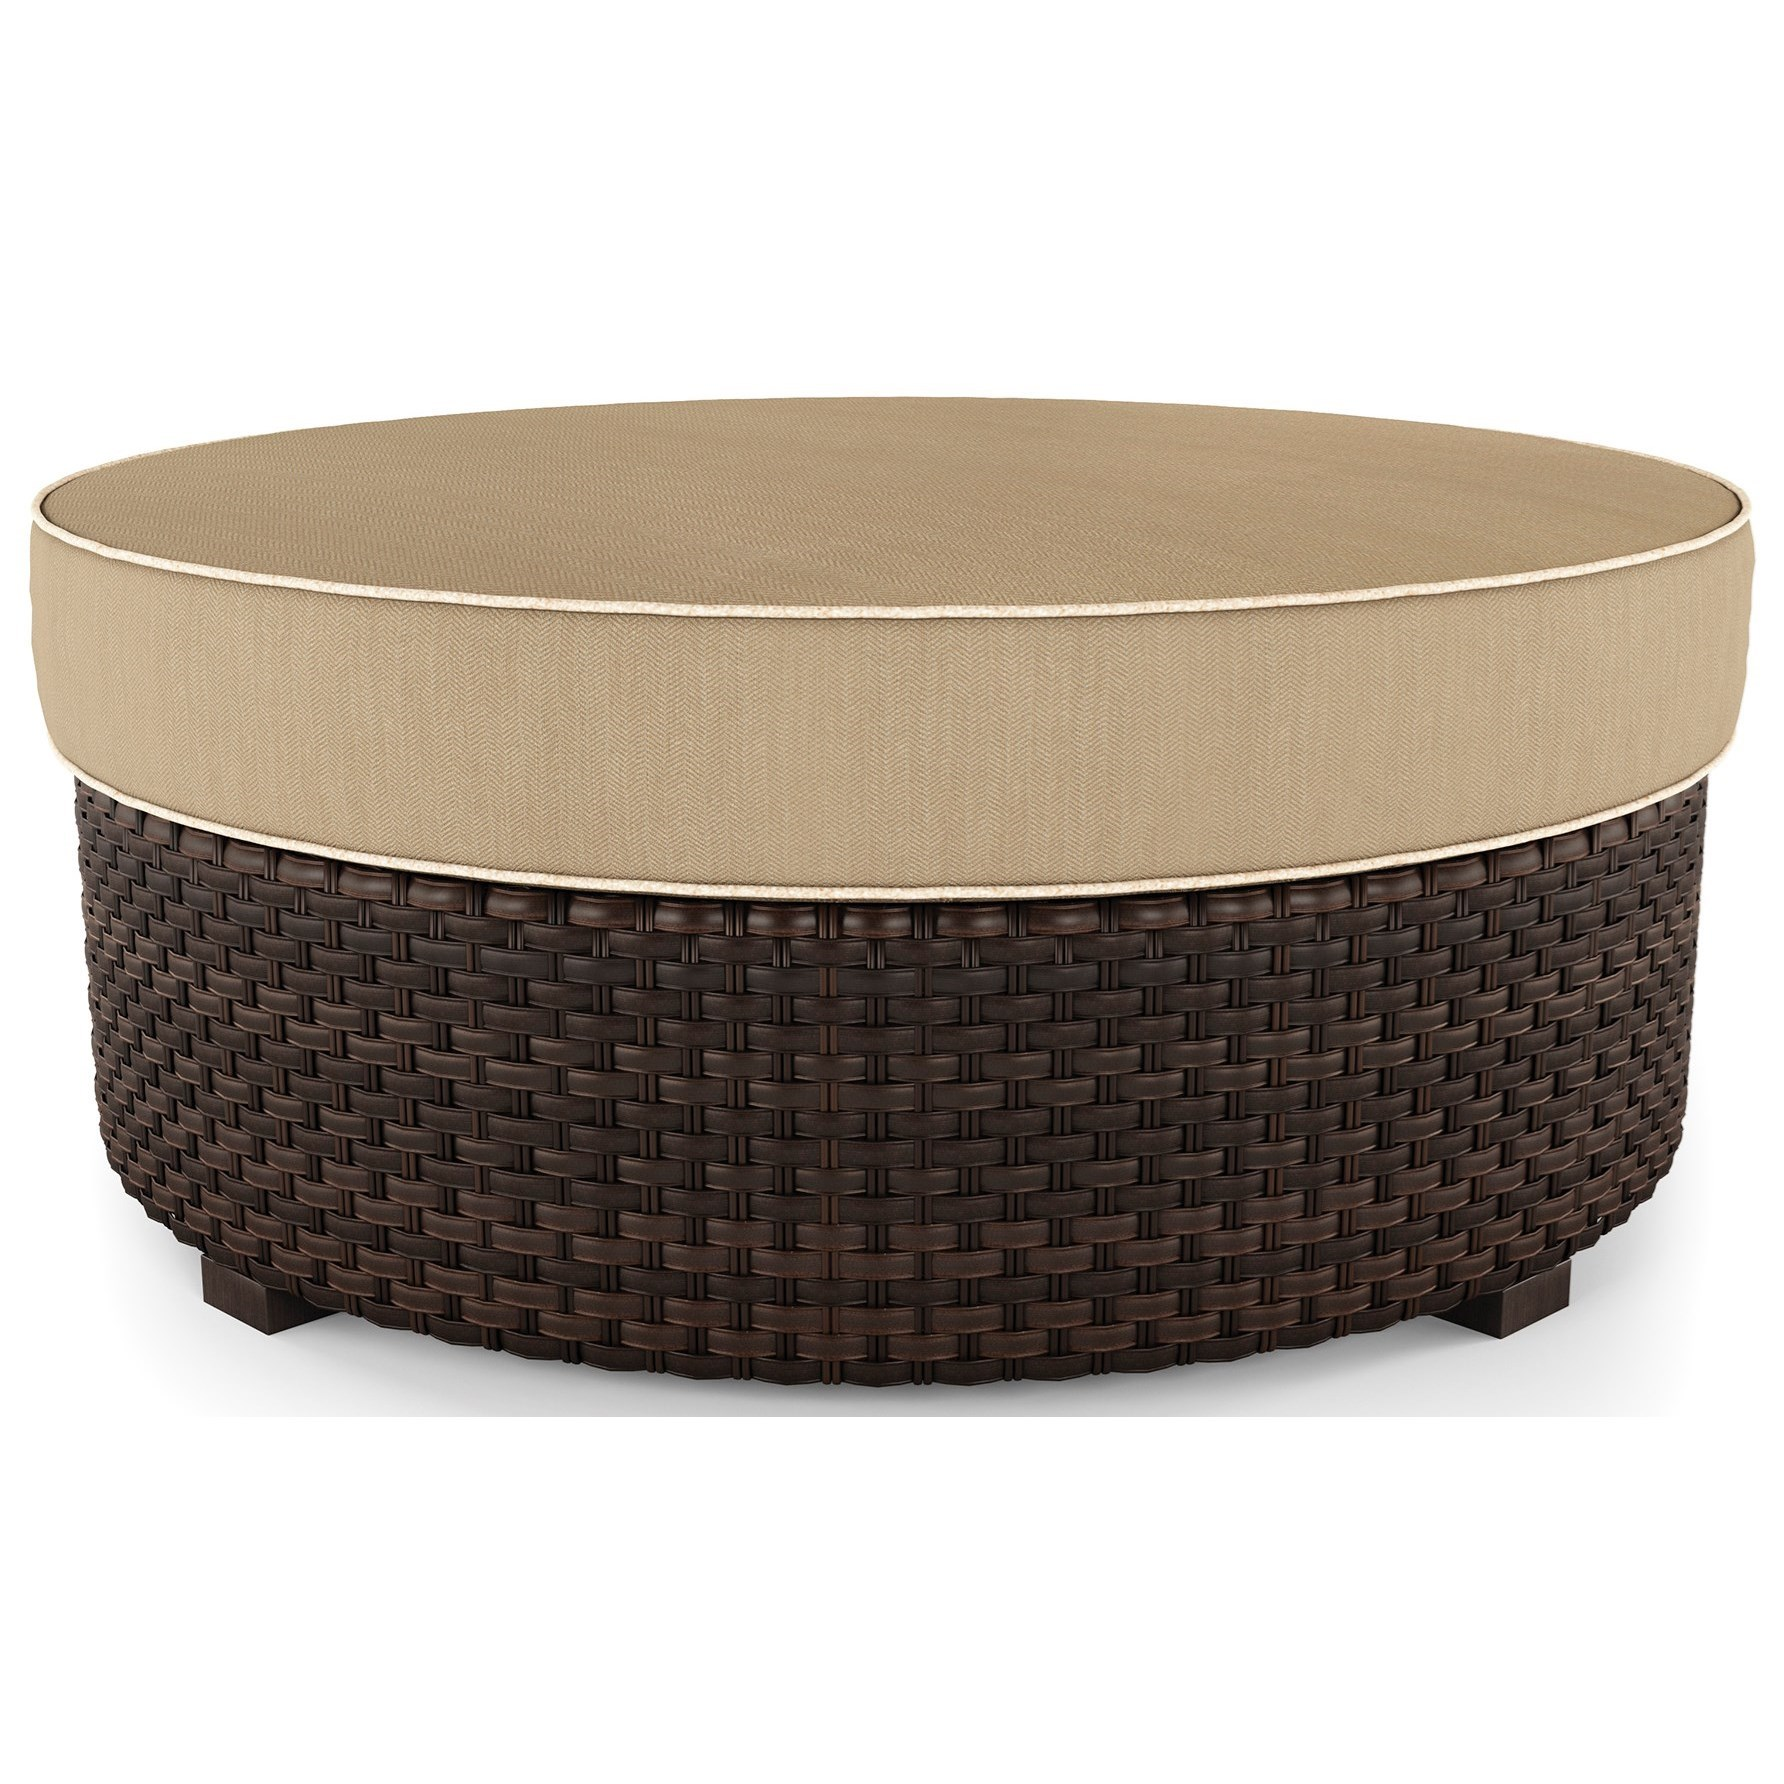 Wicker Ottoman Spring Ridge Resin Wicker Ottoman With Cushion By Signature Design By Ashley At Rife S Home Furniture